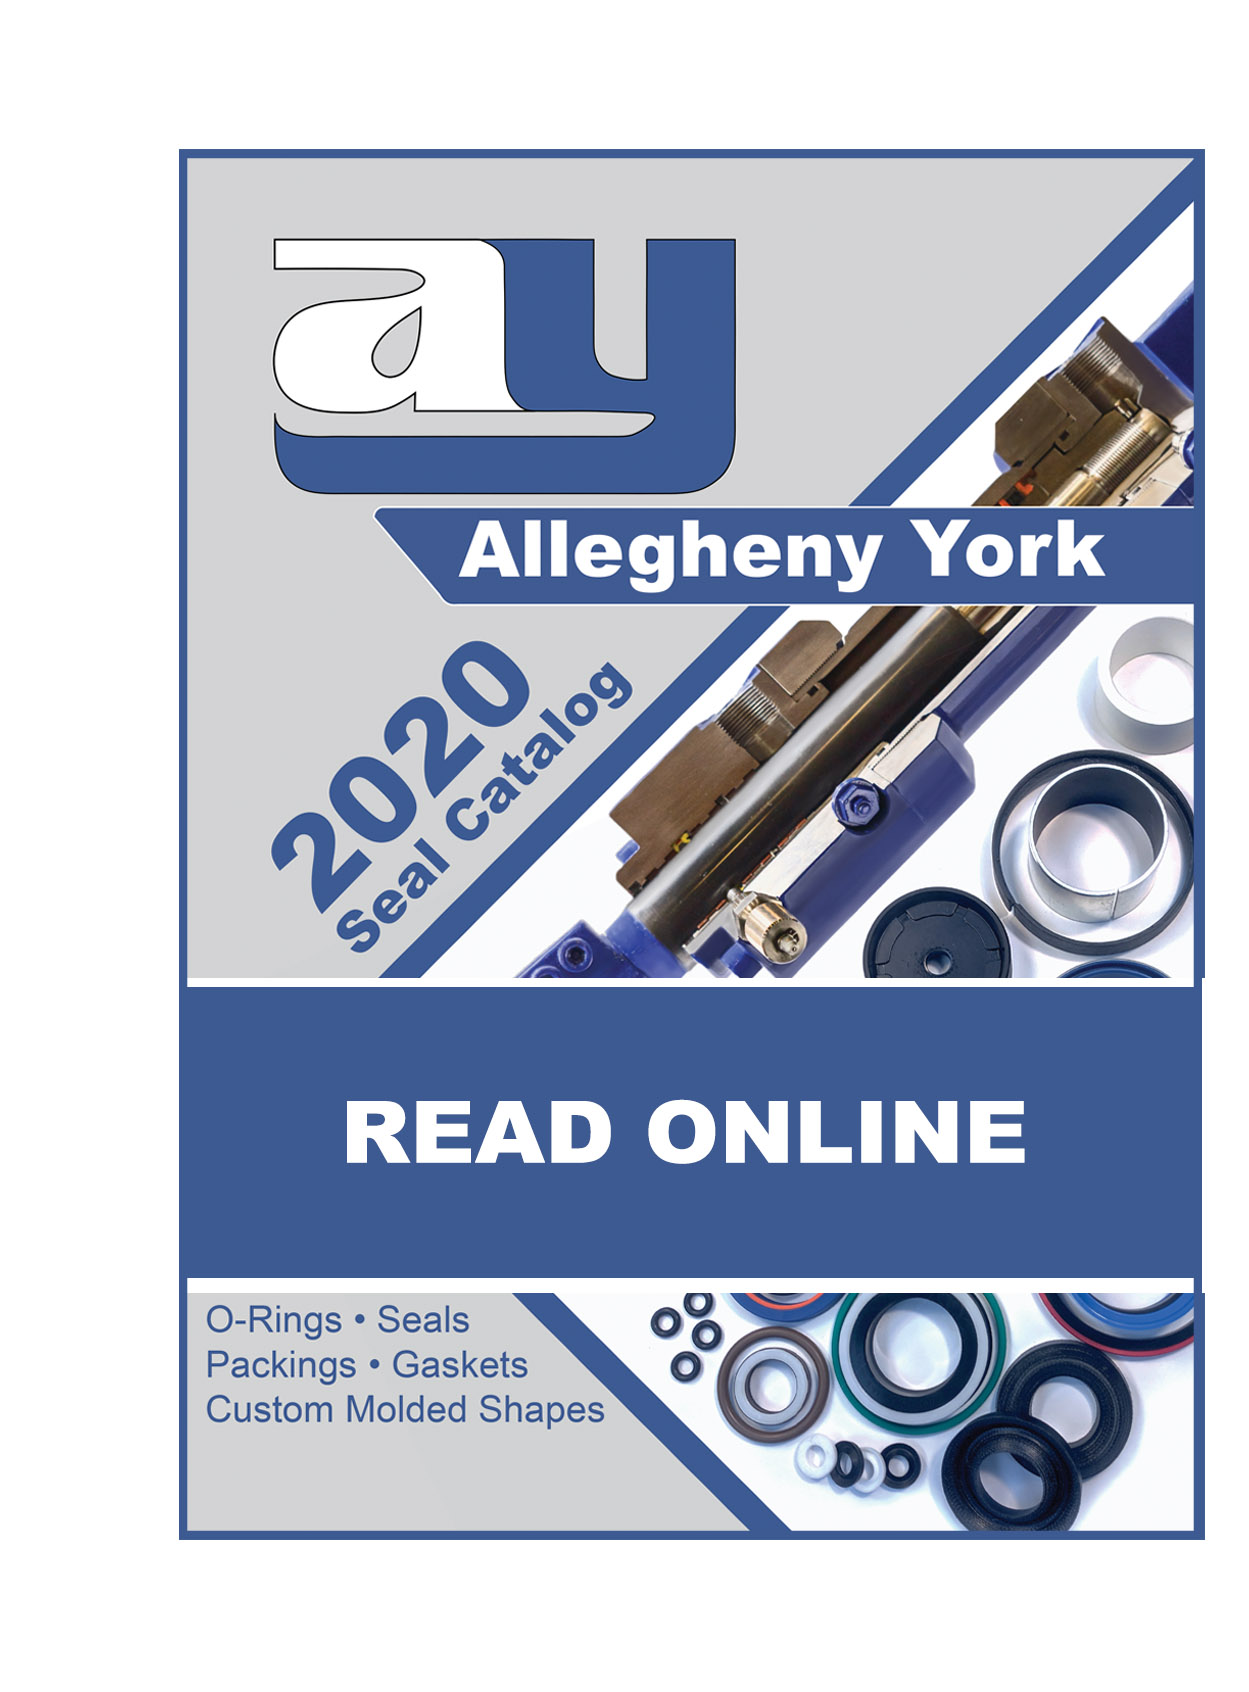 Allegheny York 2020 Catalog Read Online